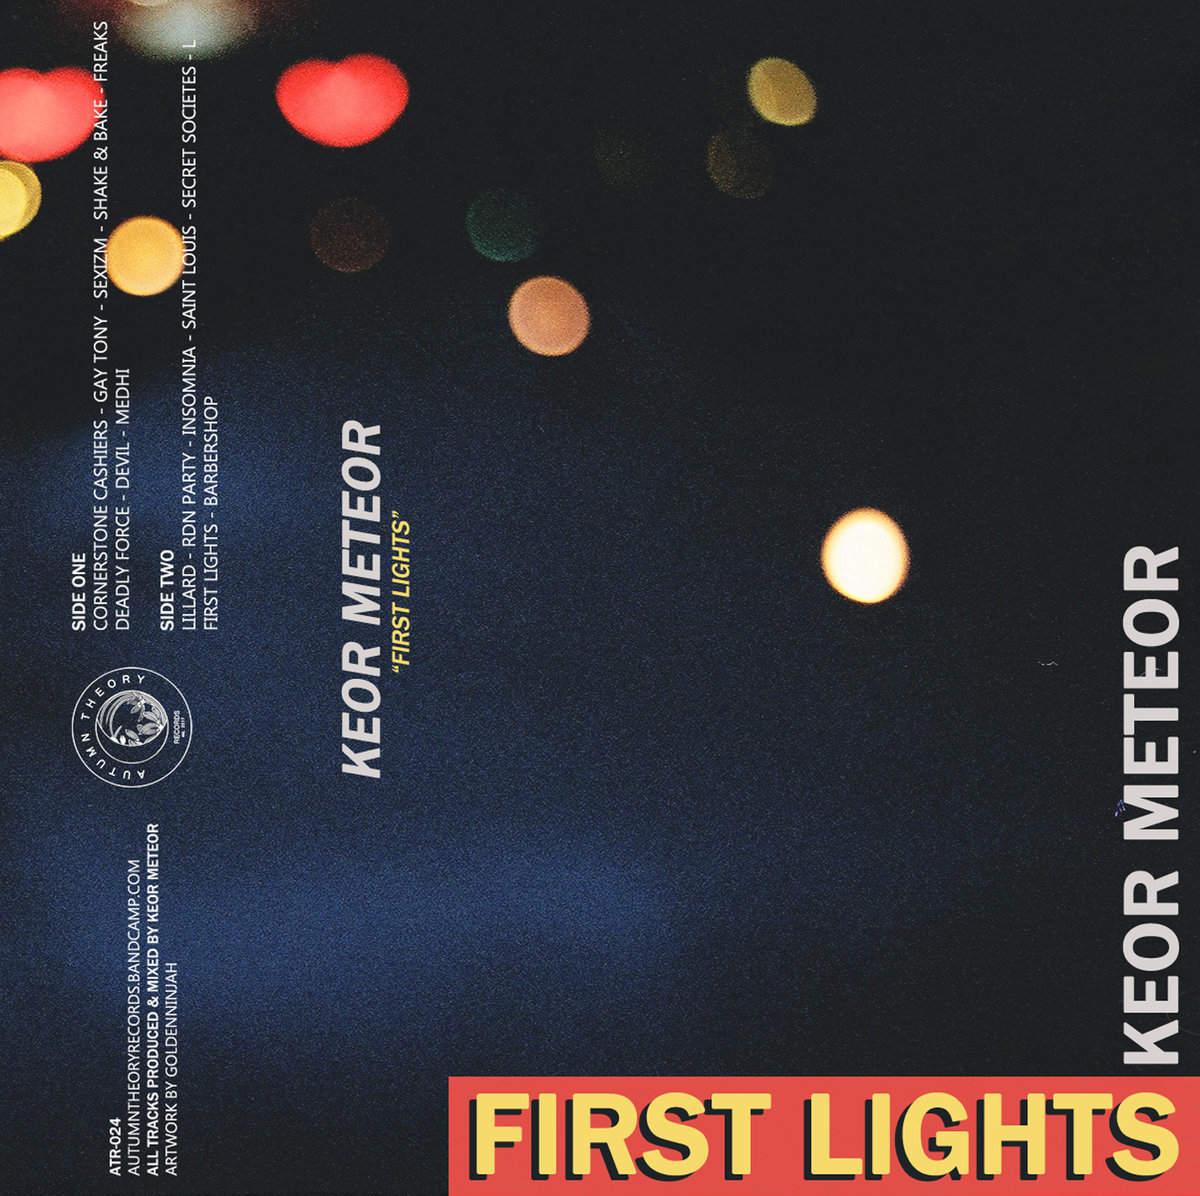 Keor Meteor – First Lights